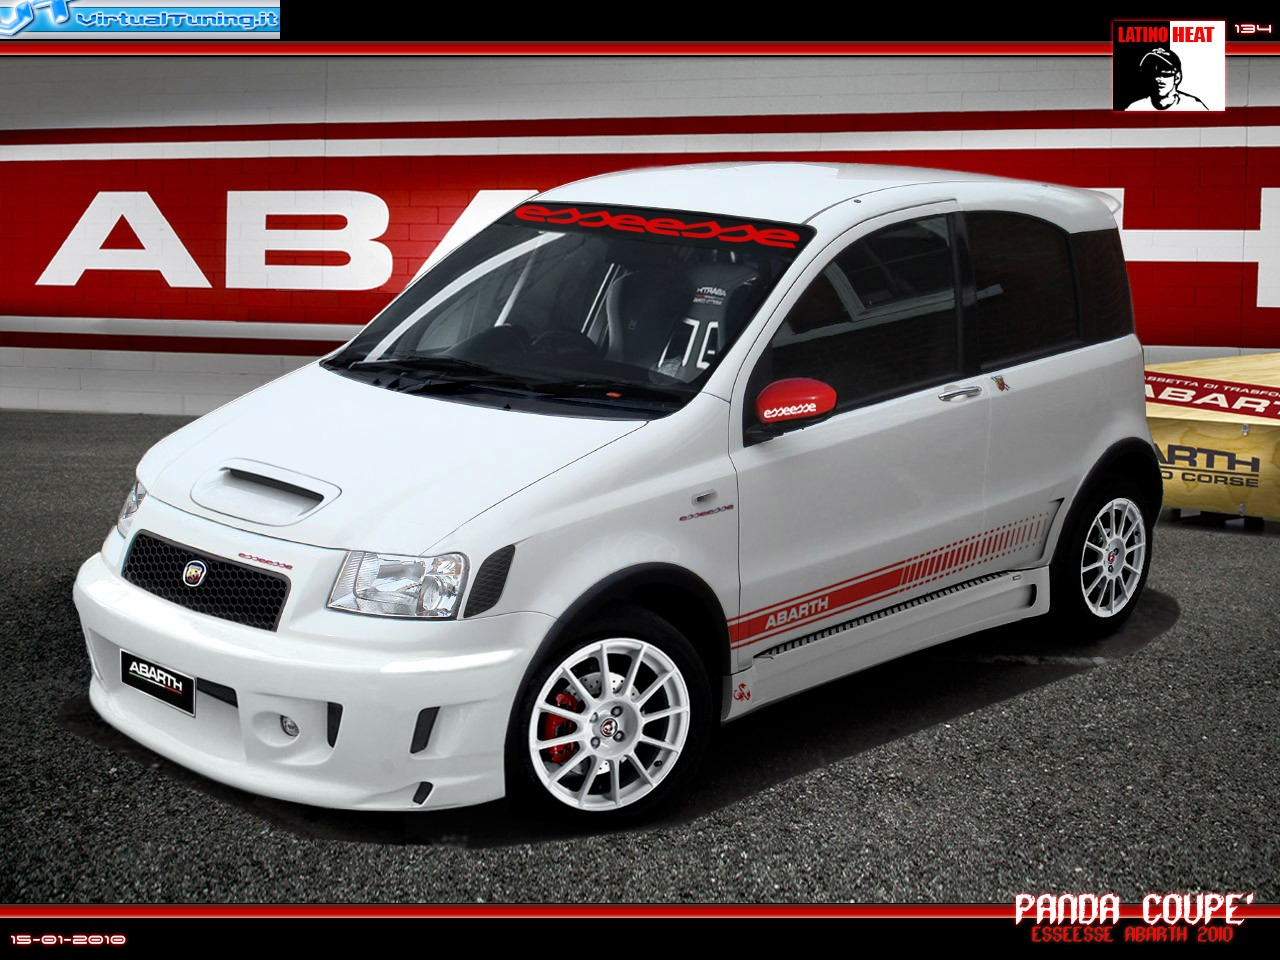 Fiat Panda 100hp By Latino Heat Virtualtuning It